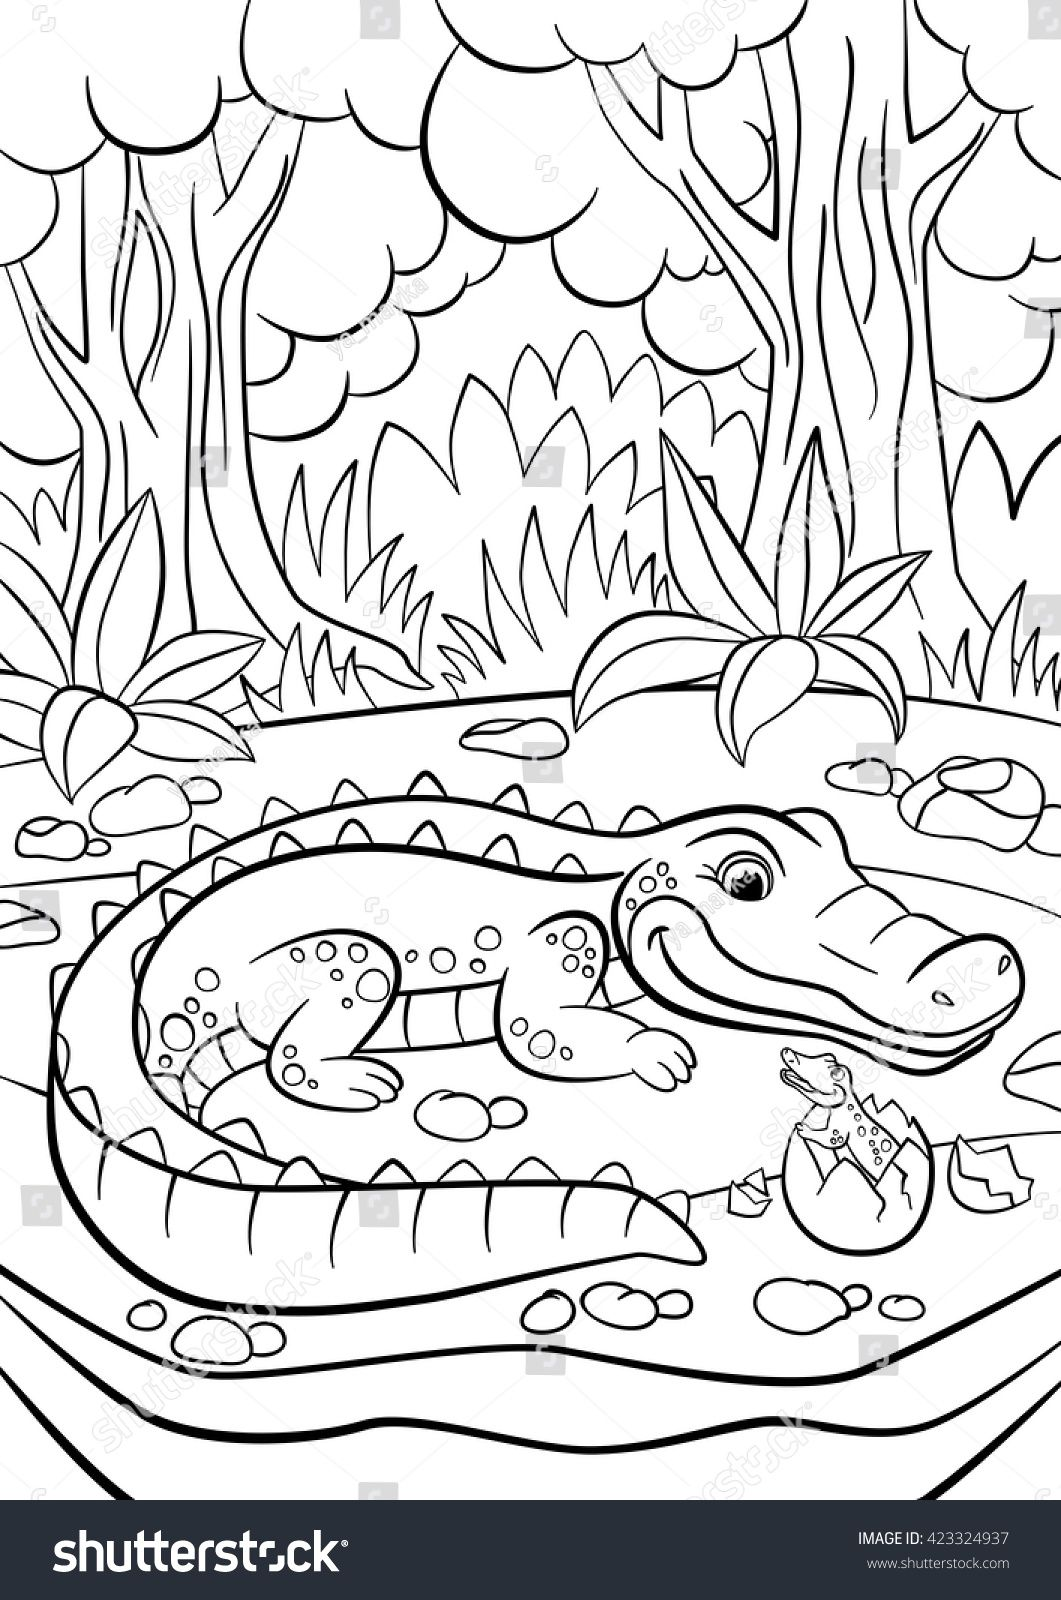 Awesome Baby Alligator Coloring Page Dolphin Coloring Pages Animal Coloring Pages Turtle Coloring Pages